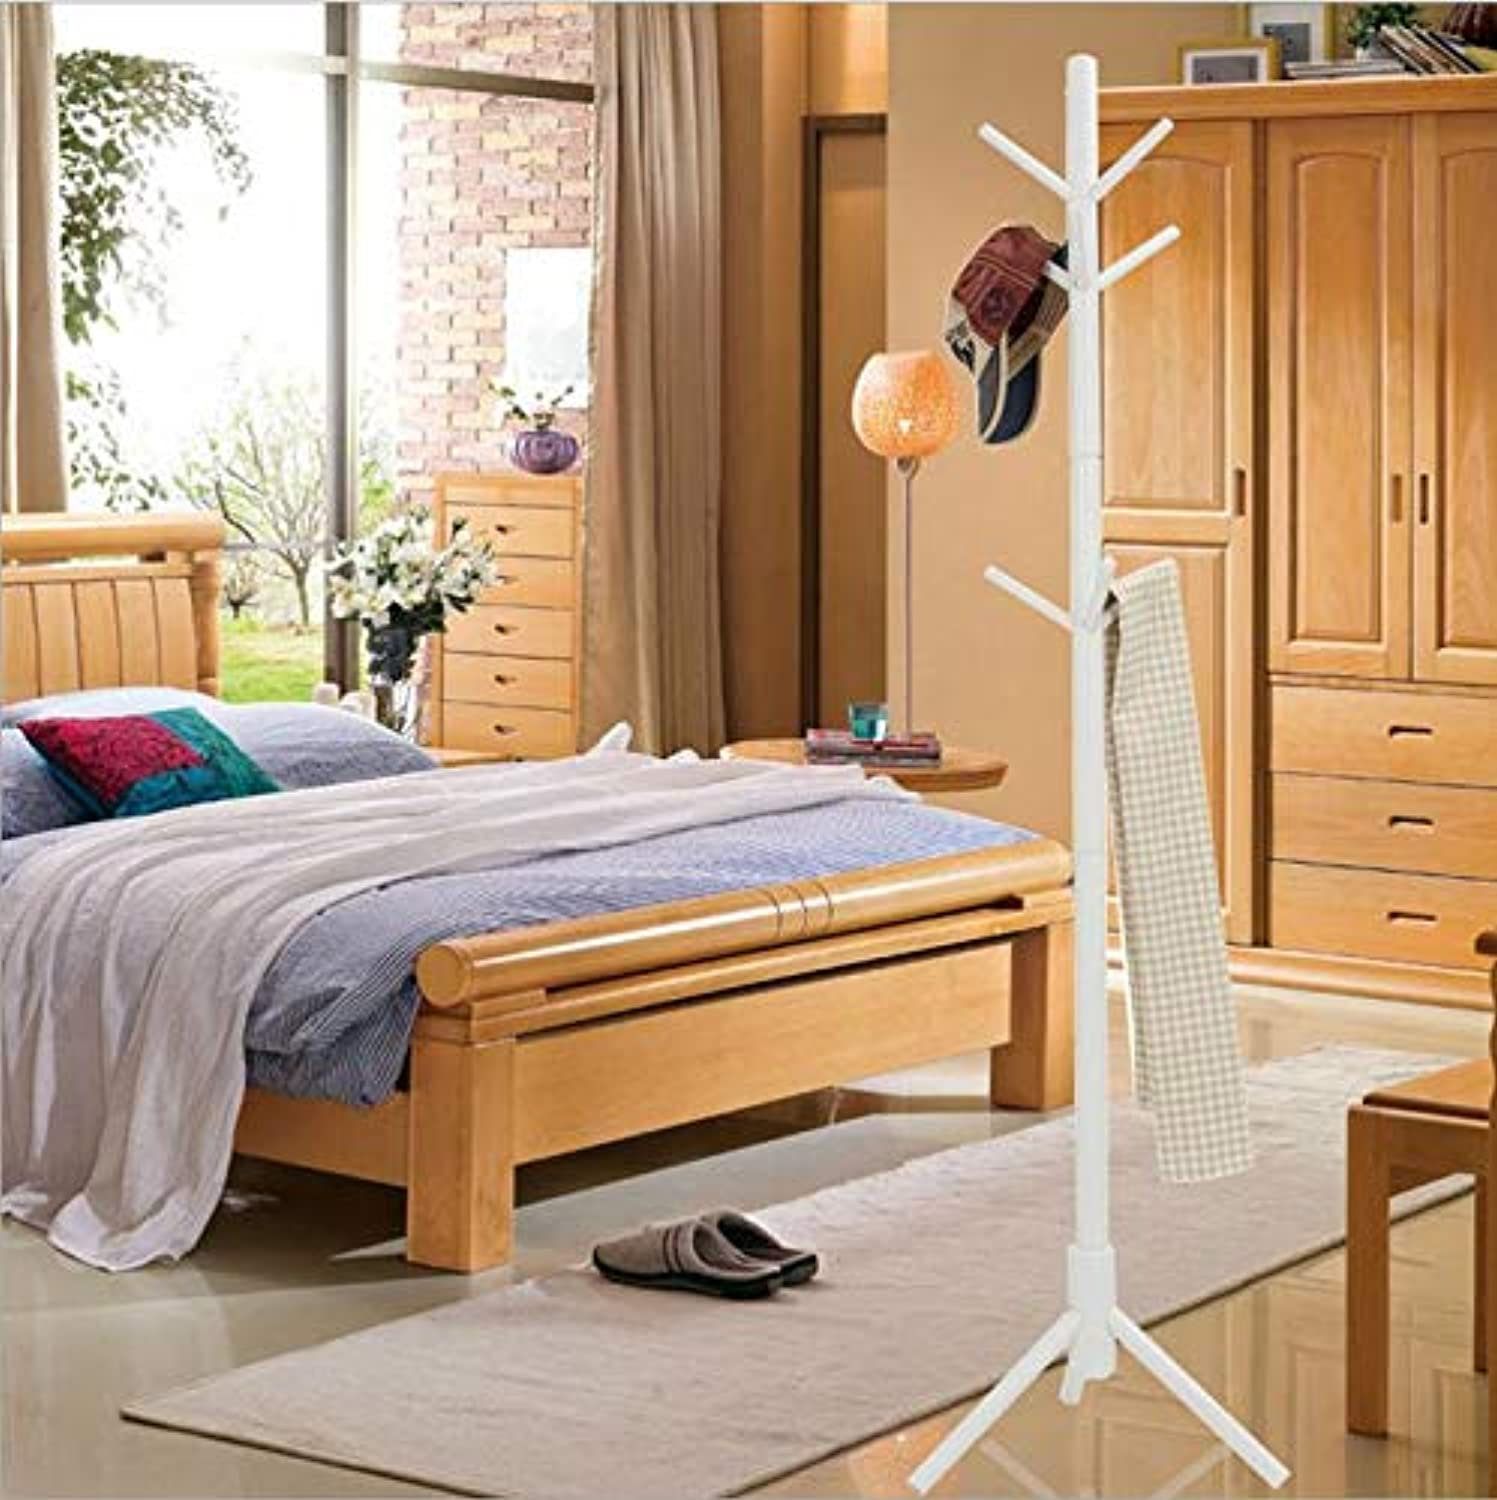 Wooden Coat Stand Tree Twig Hat and Coat Rack for Entryway Hallway Bedroom Closet Wardrobe 9 Hooks 175CM Natural Solid Wood,White